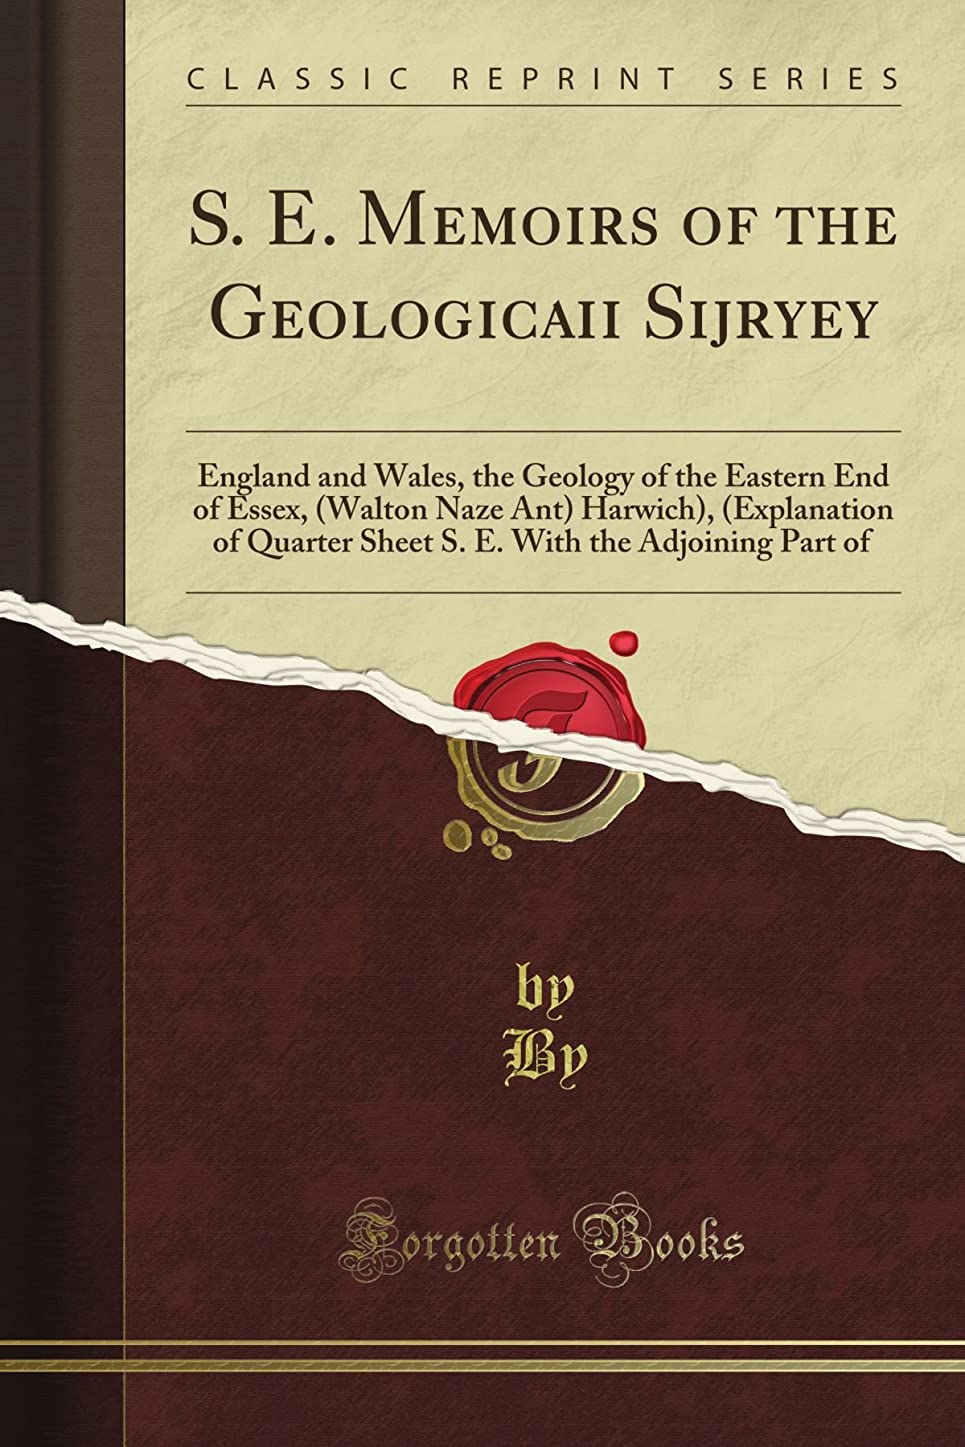 モスク欠陥求人S. E. Memoirs of the Geologicaii Sijryey: England and Wales, the Geology of the Eastern End of Essex, (Walton Naze Ant) Harwich), (Explanation of Quarter Sheet S. E. With the Adjoining Part of (Classic Reprint)